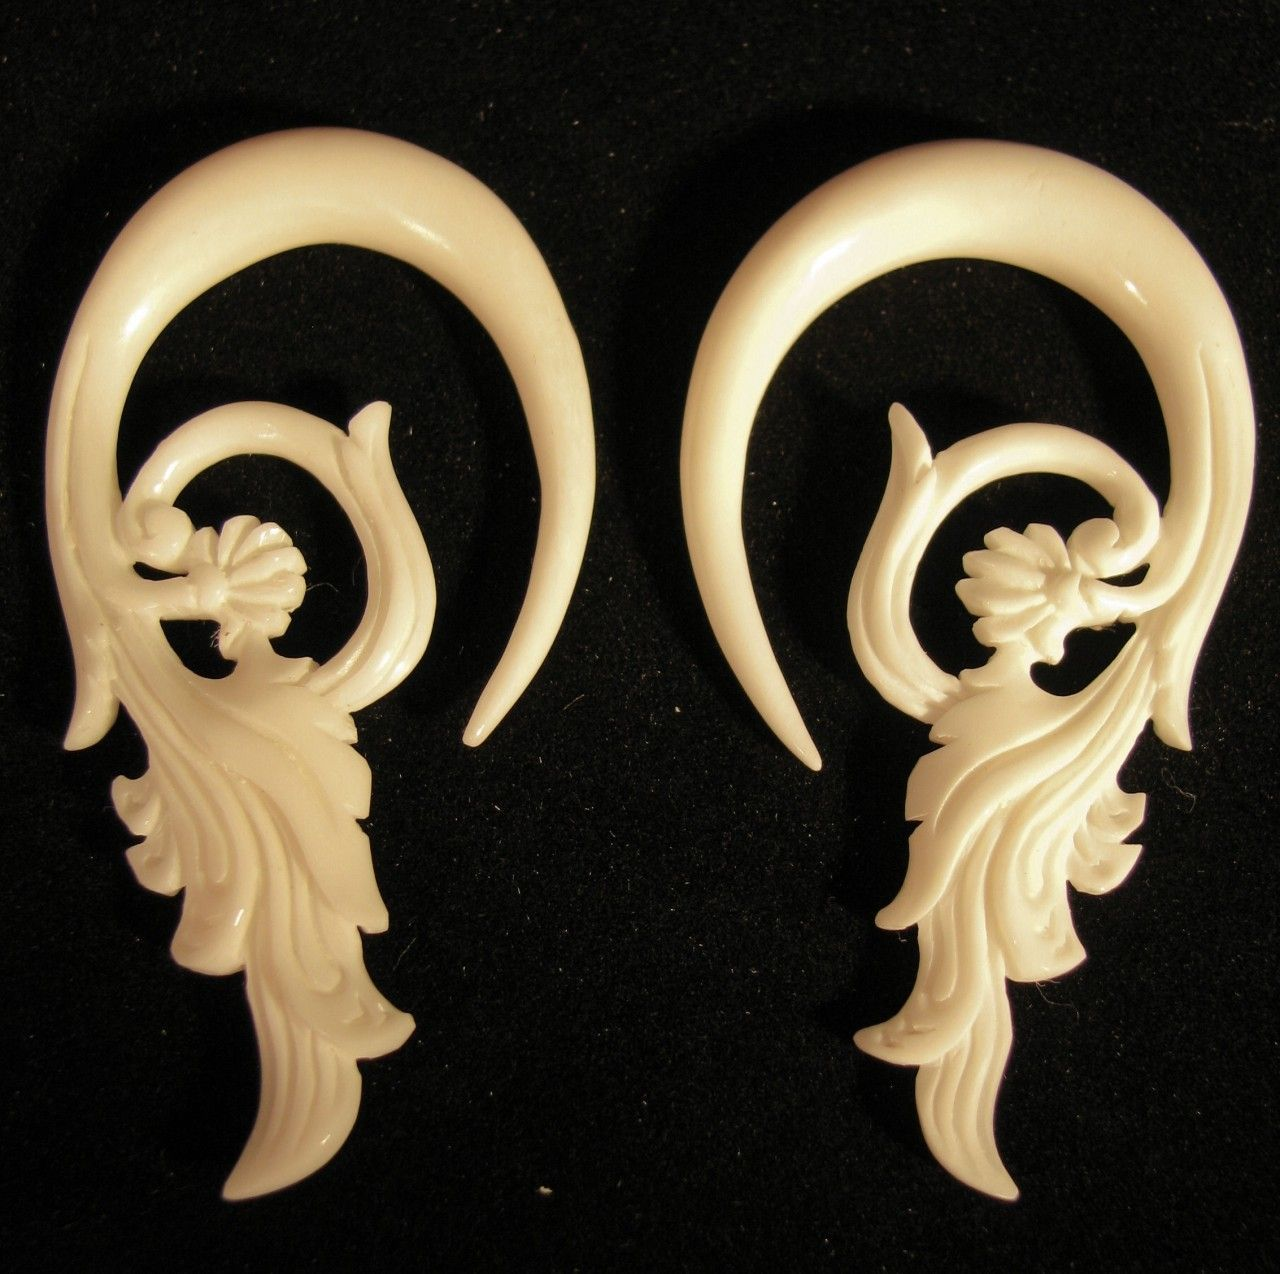 Feathered Hyacinth 2g Or 6mm Organic Hanging Ear Gauges Spiral Carved Bone Earrings For Stretched Piercings Bone Earrings Ear Gauges Ear